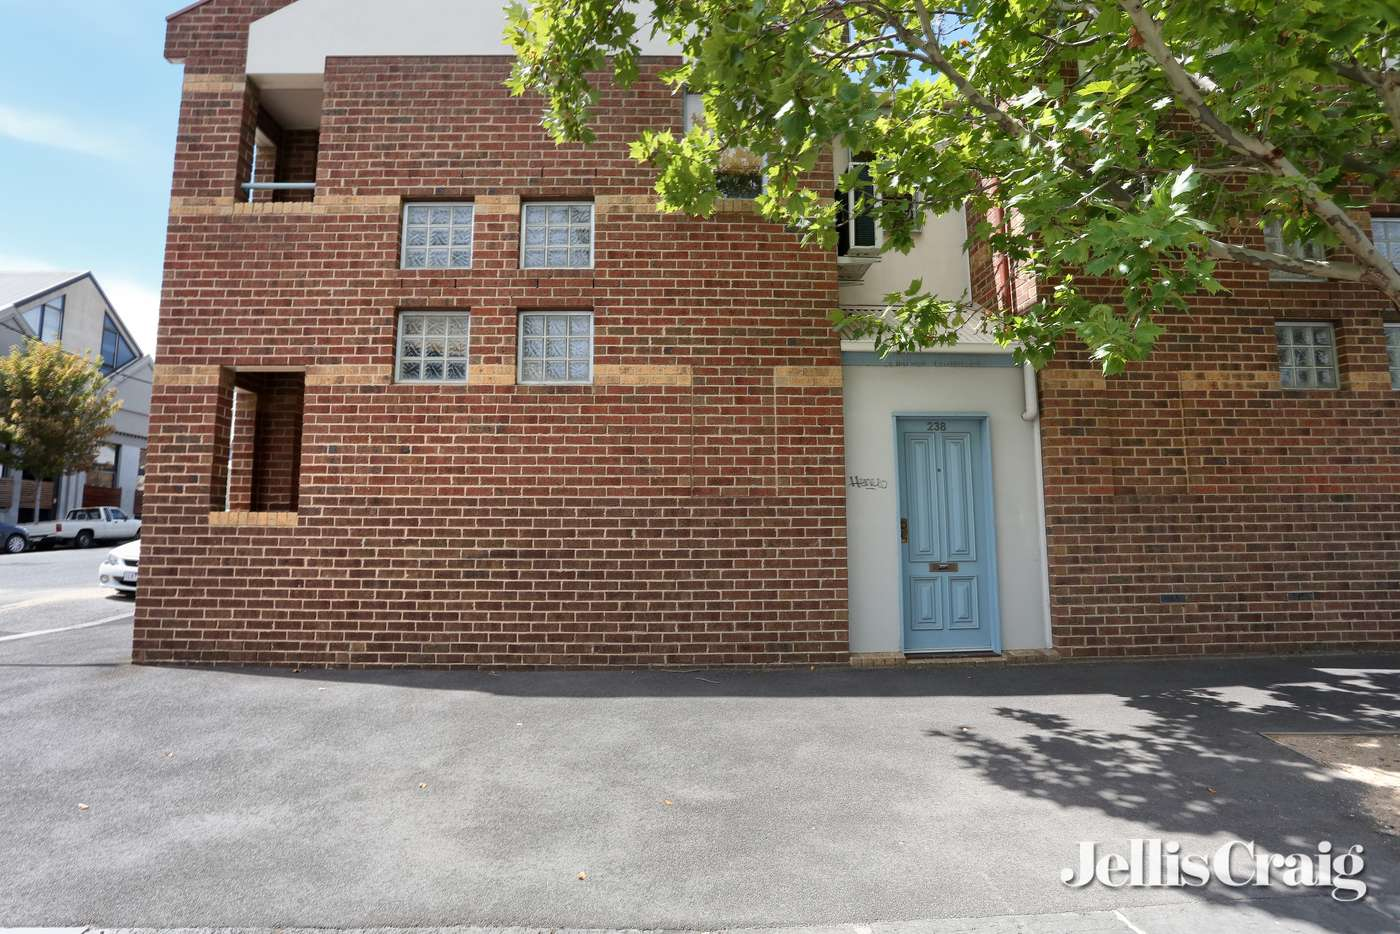 Main view of Homely house listing, 238 Abbotsford Street, North Melbourne VIC 3051